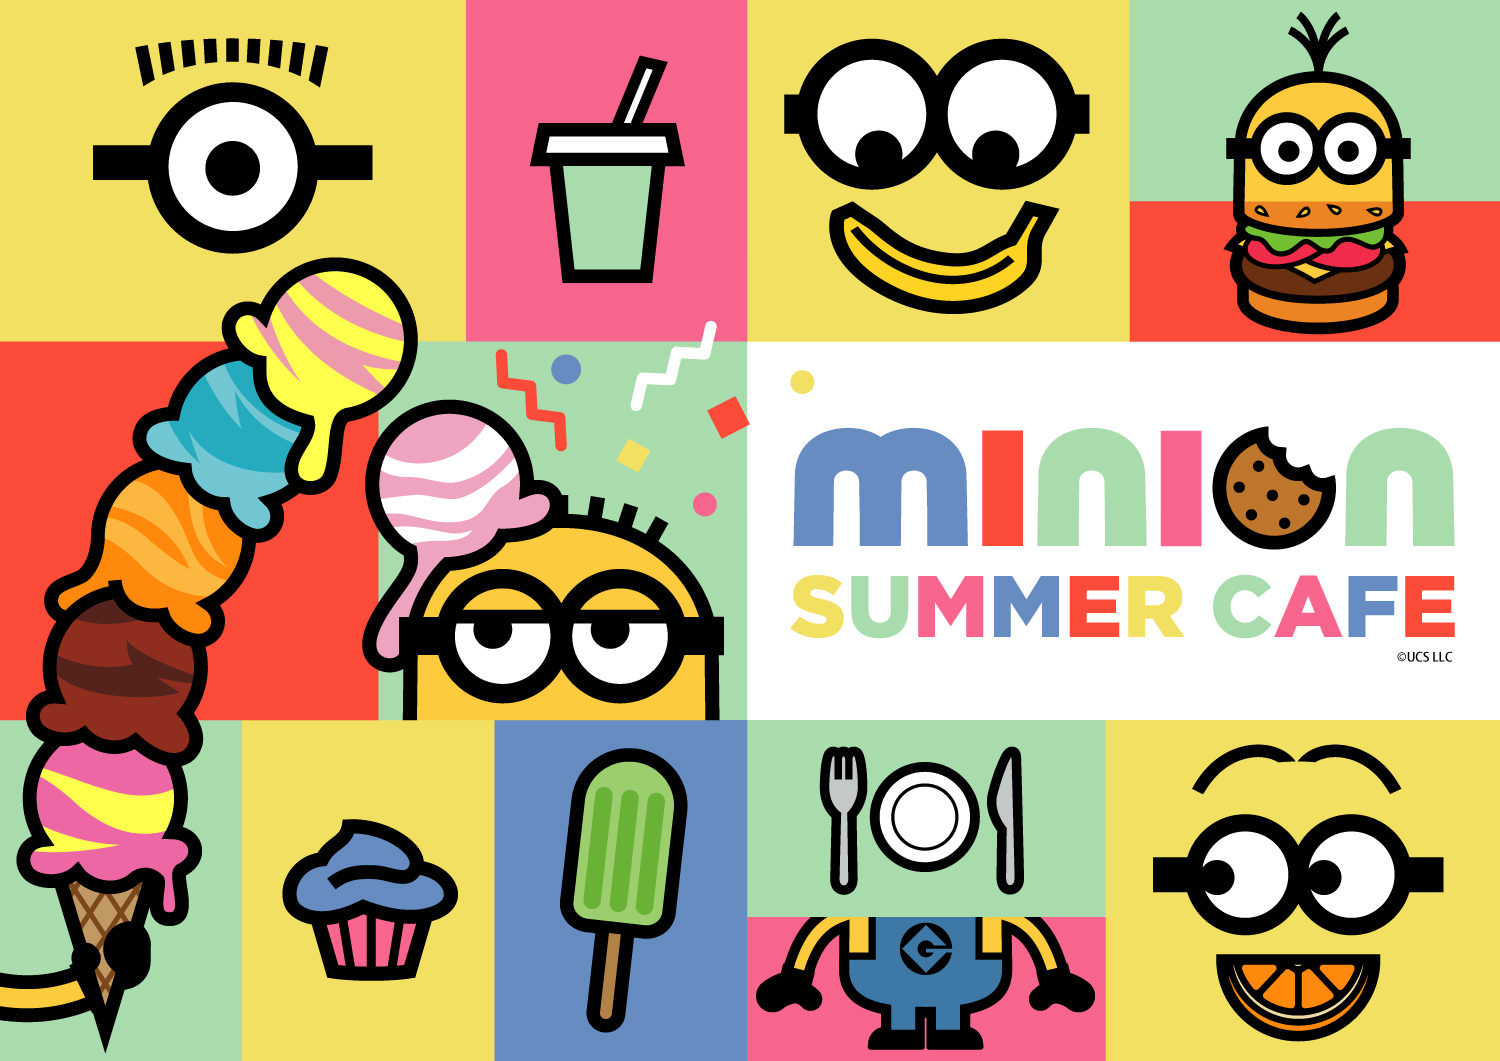 MINION SUMMER CAFE in Japan2021